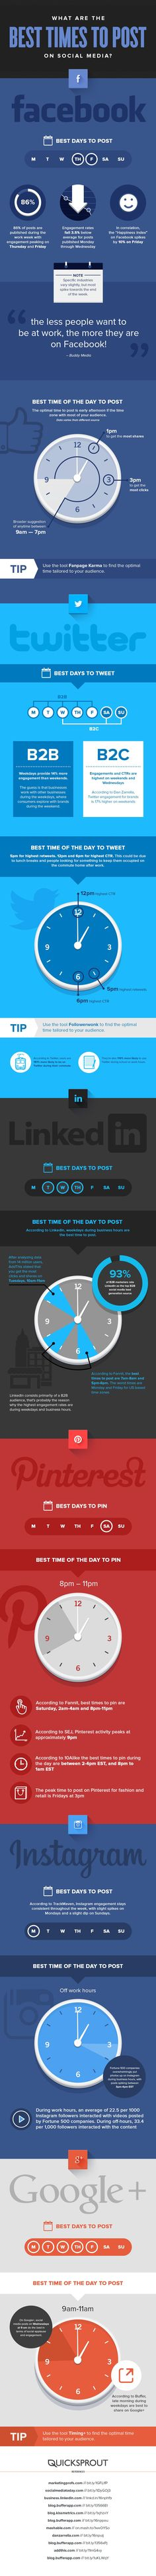 What Are The Best Times to Post on Social Media infographic SocialMedia